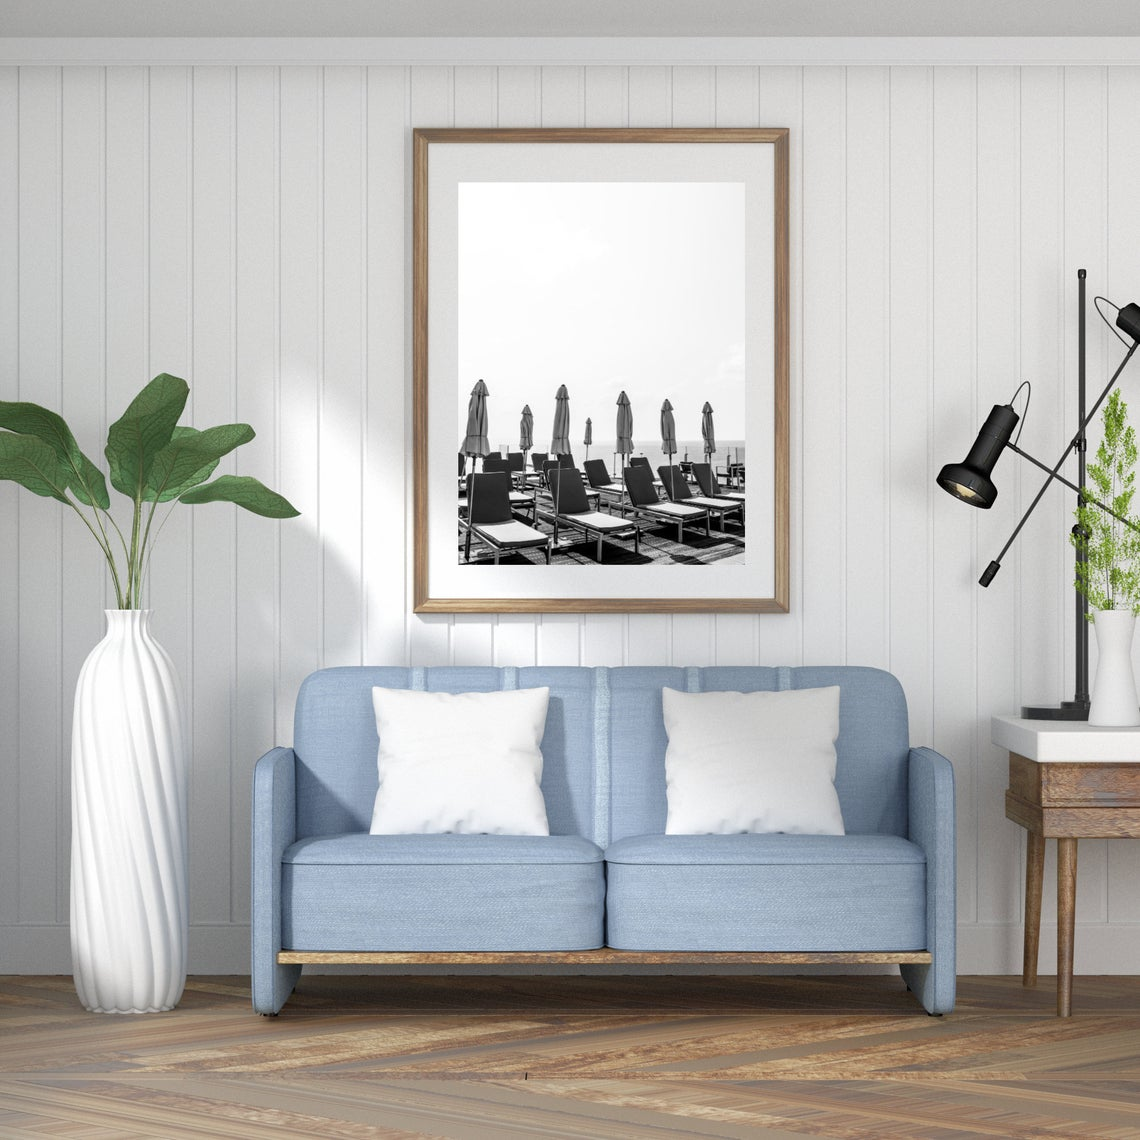 black and white pool chairs wall print tel aviv